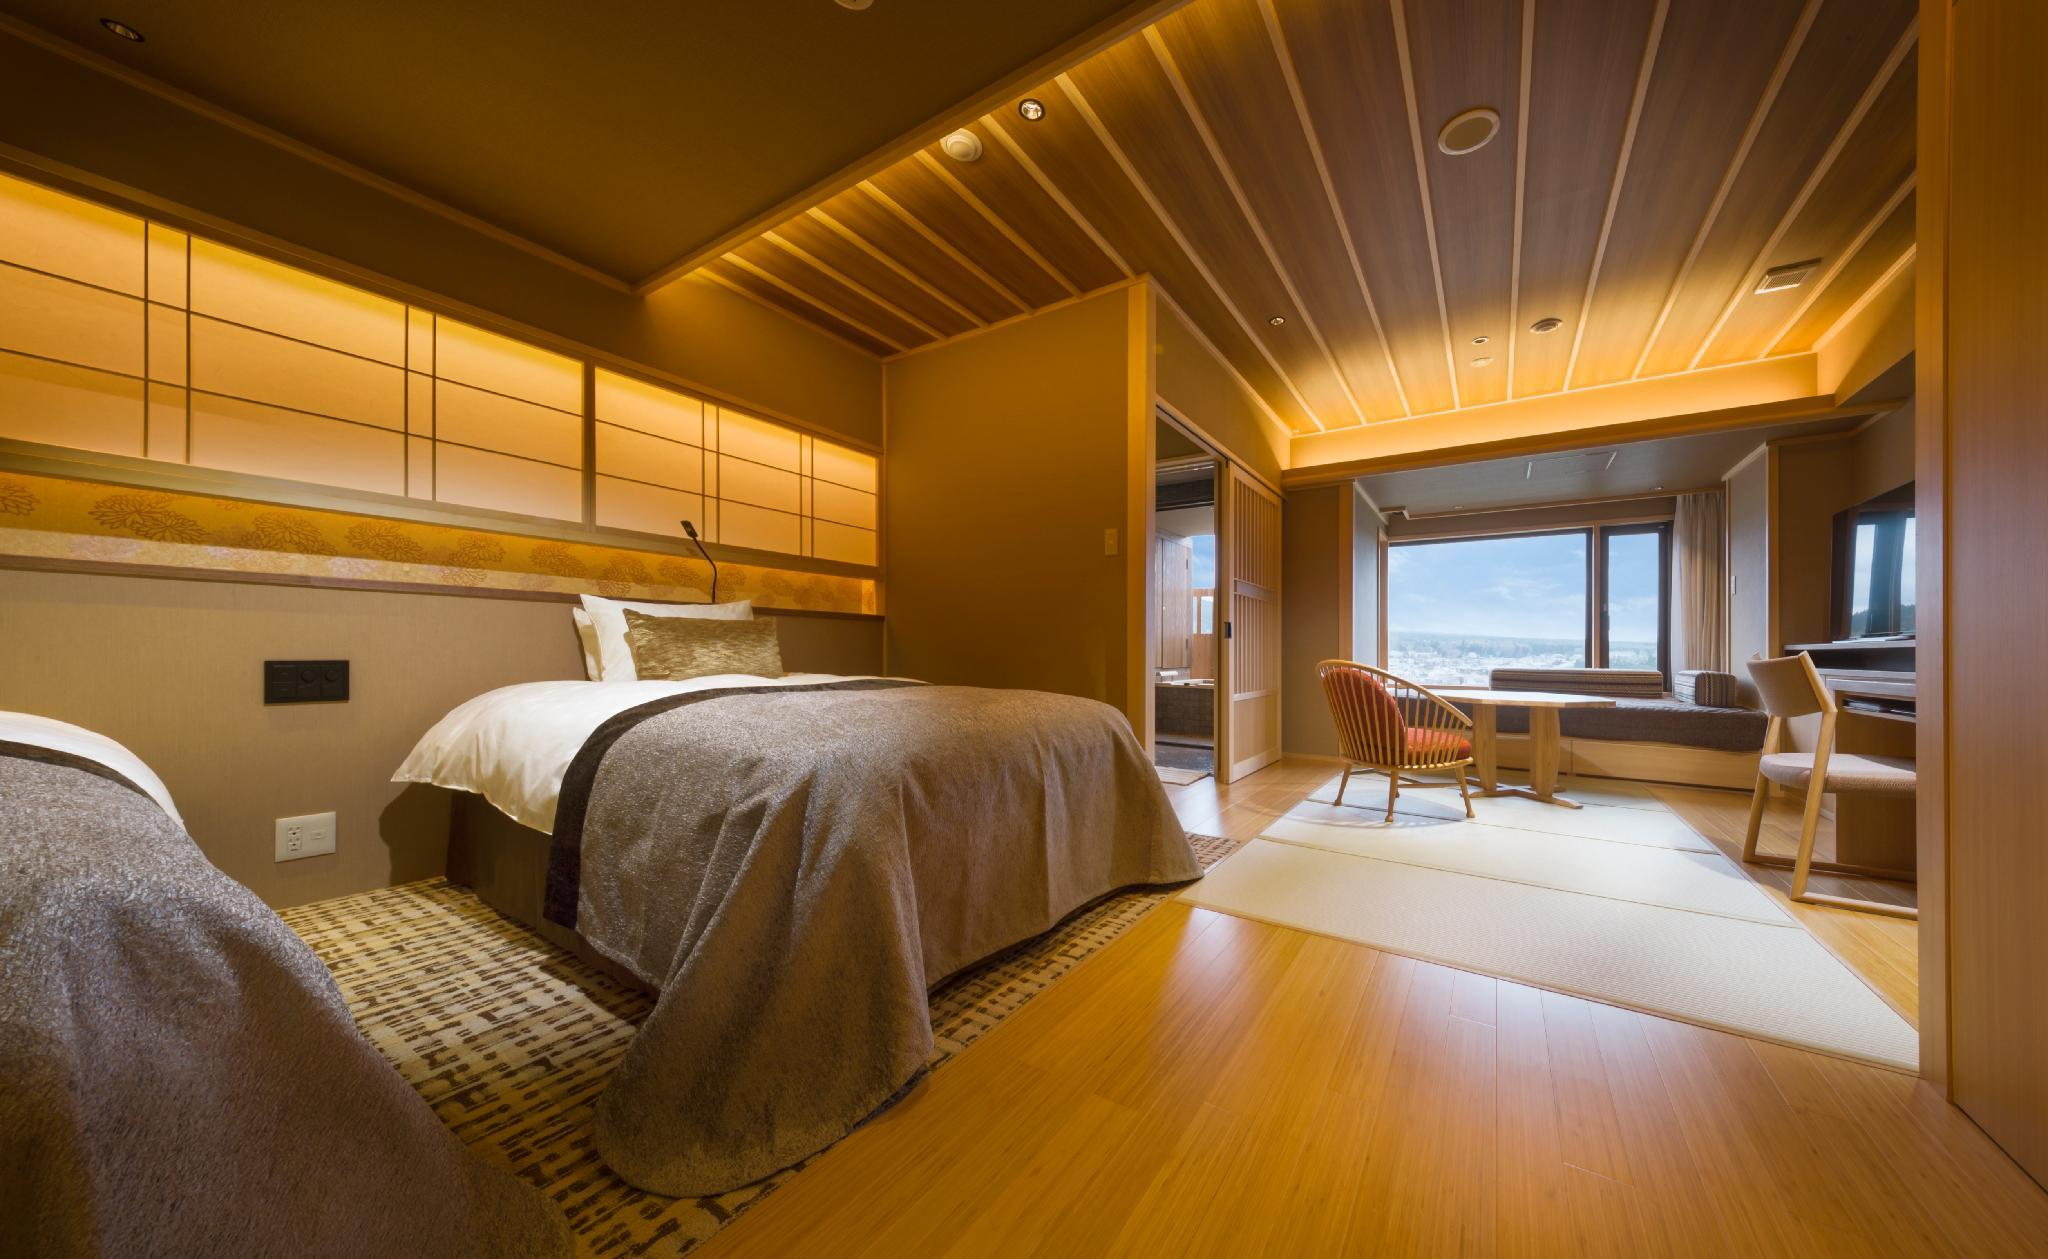 Sanri Mount Fuji View Modern Japanese Style Room with Open-Air Bath - Non-Smoking